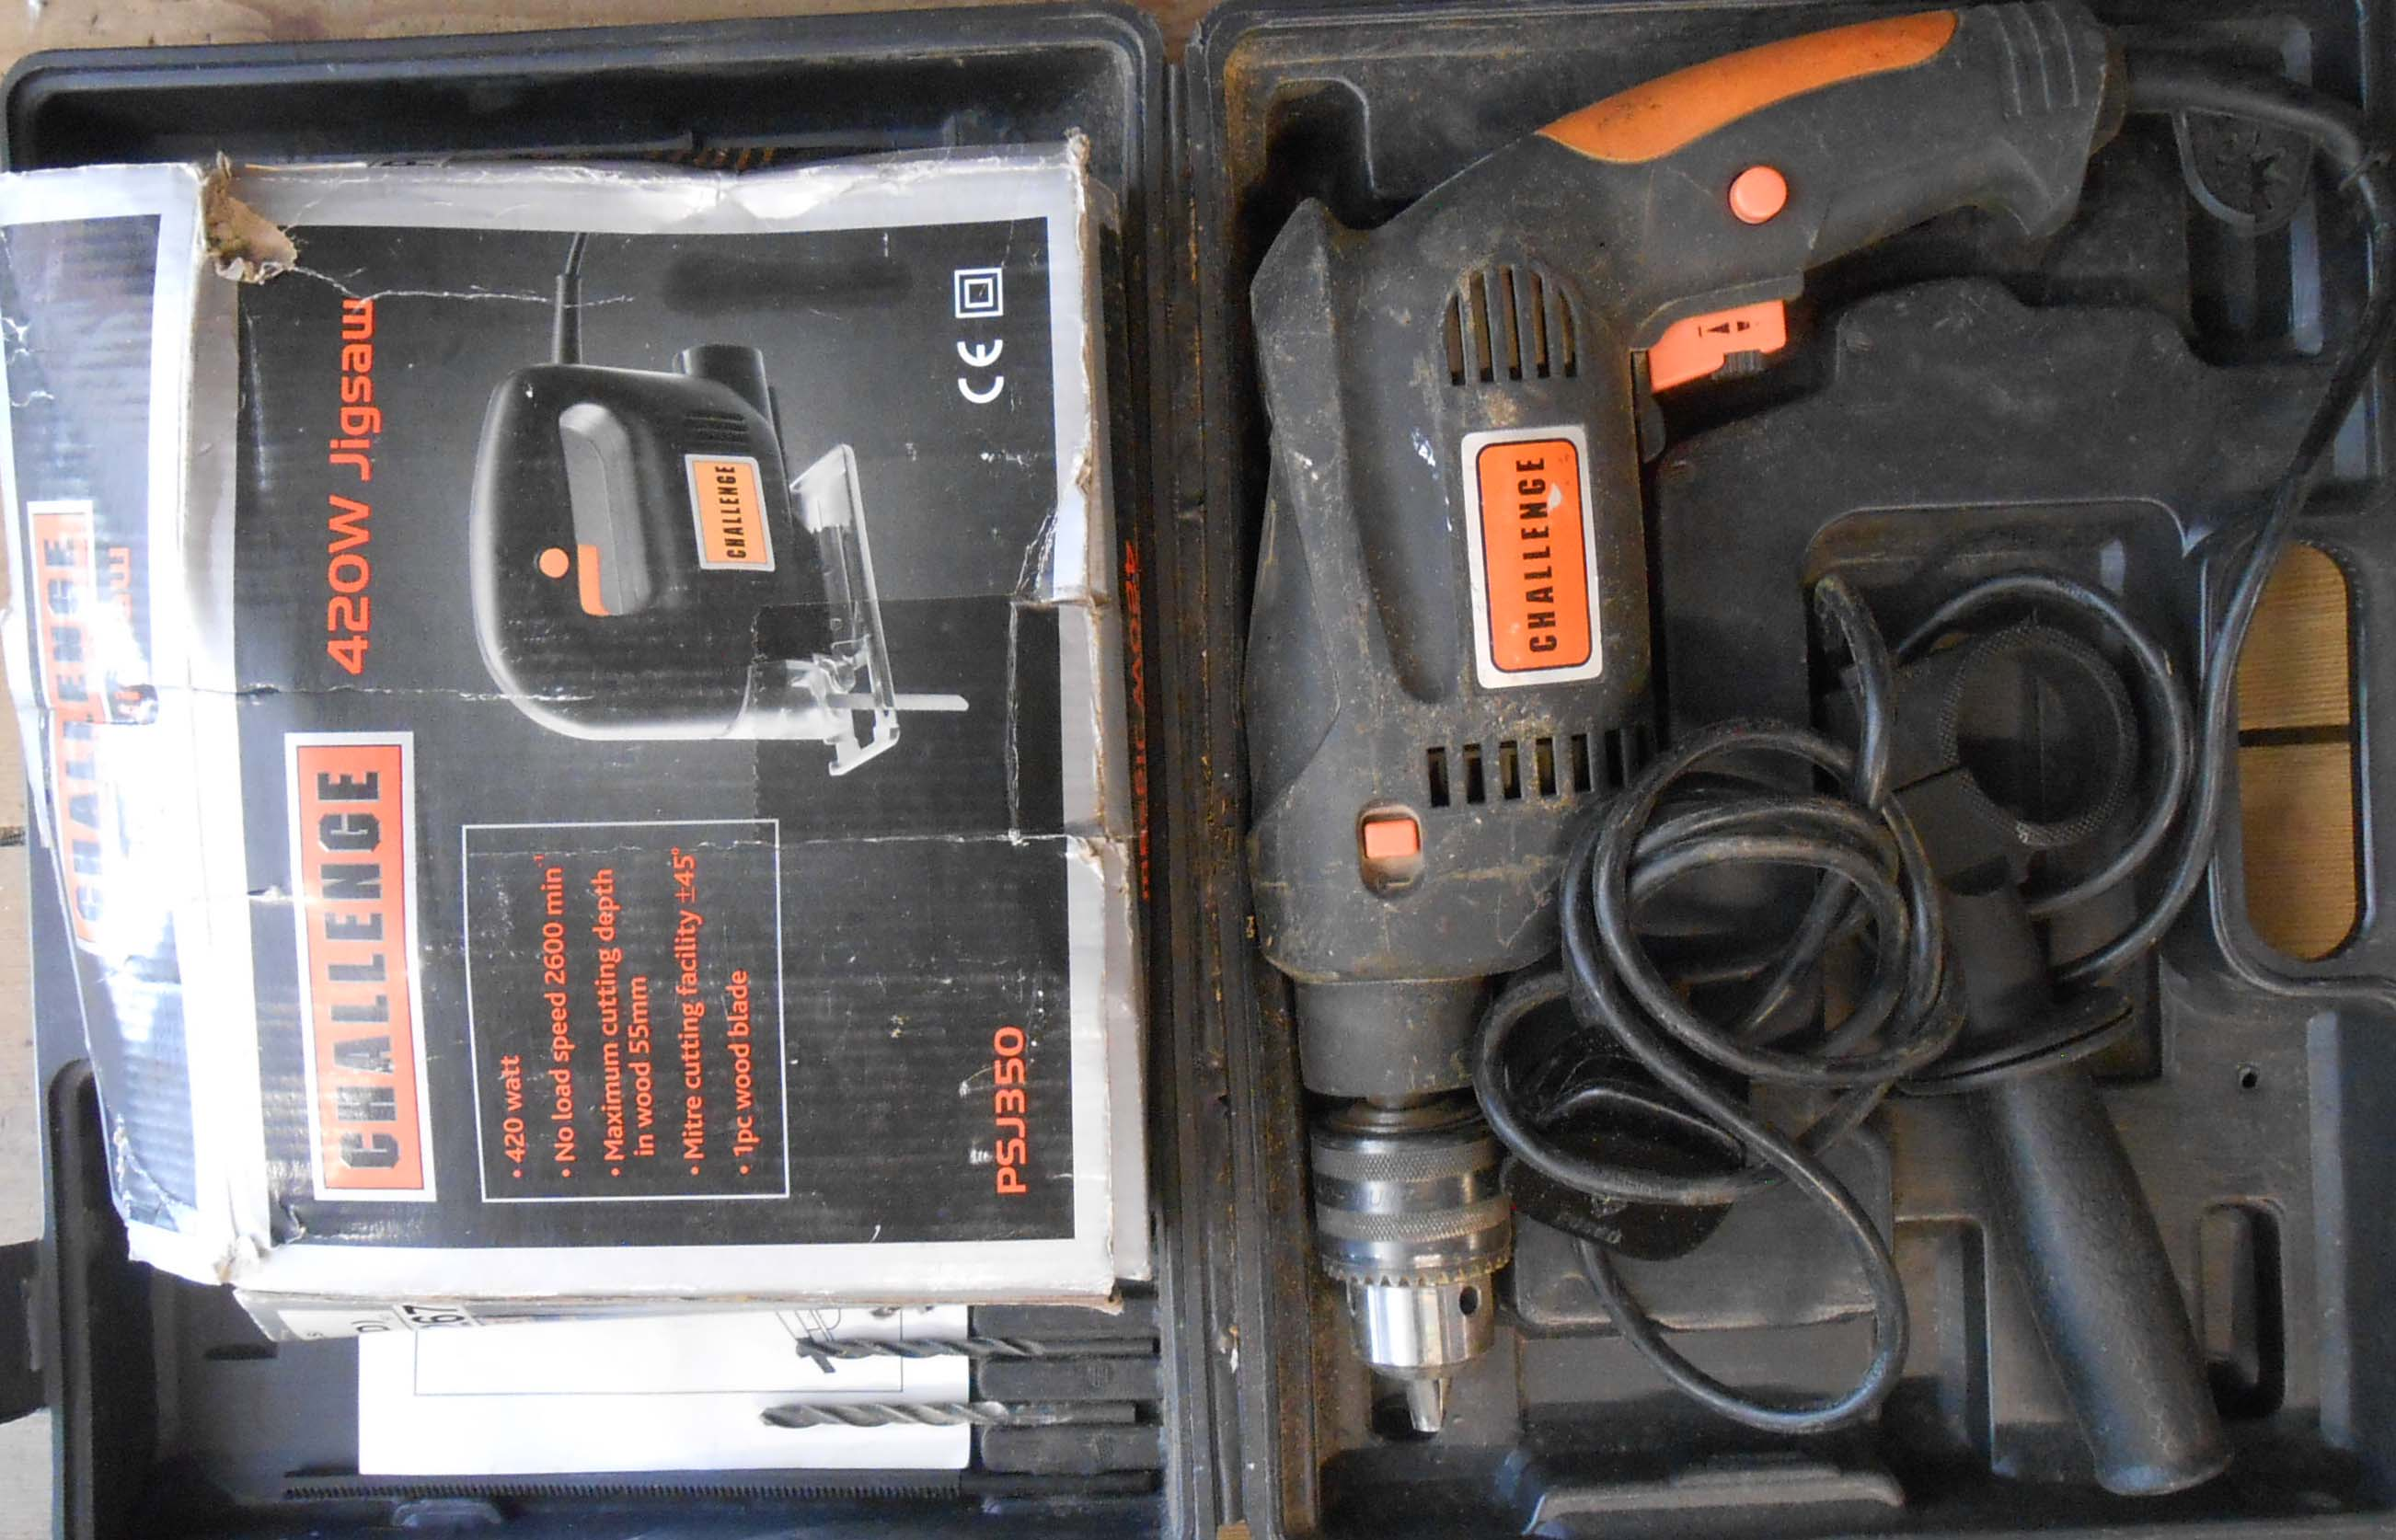 A Challenge hammer drill - sold with a jigsaw of the same make